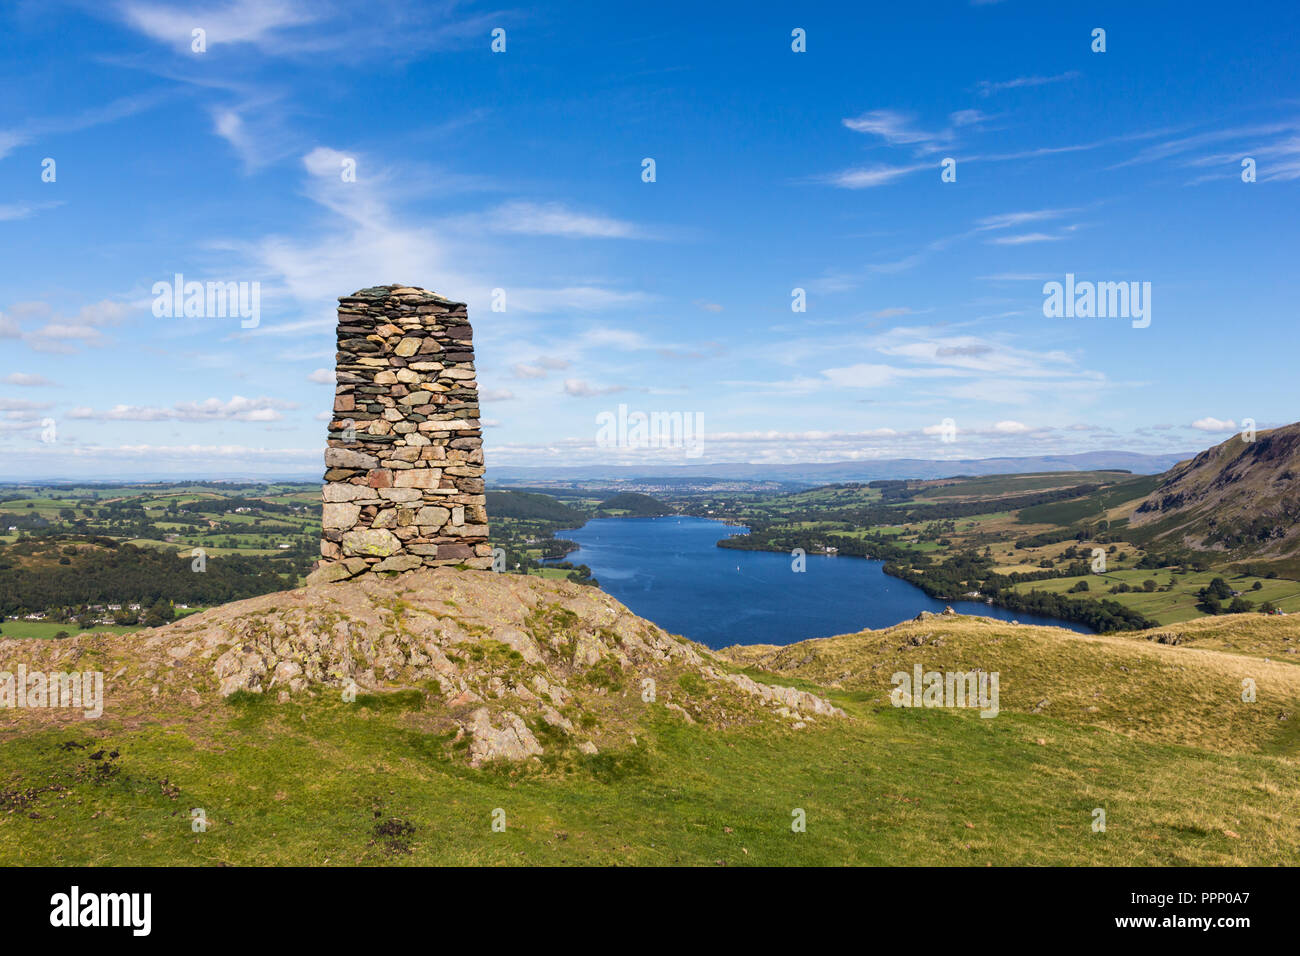 Large stone cairn on the summit of Hallin Fell overlooking Ullswater in the Lake District, England. Stock Photo